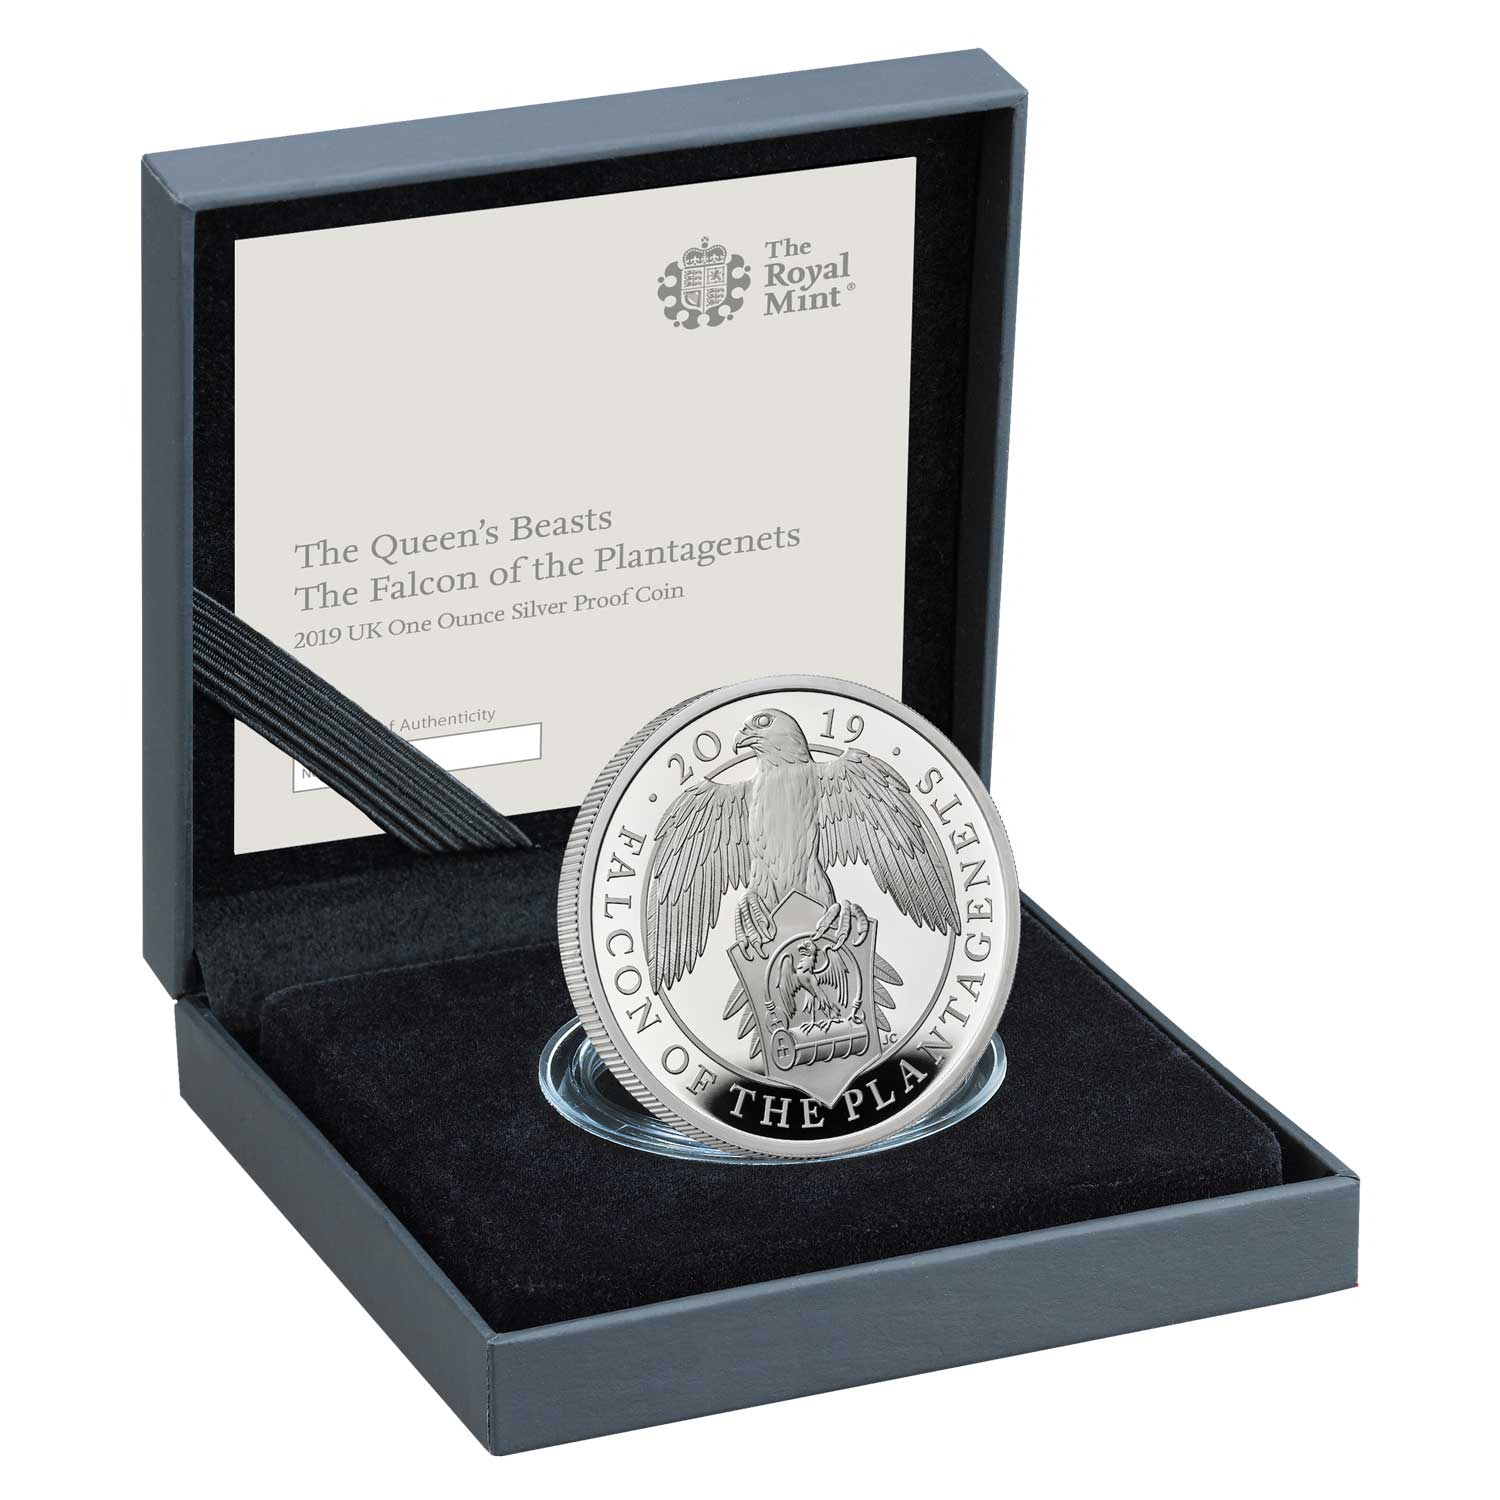 The Falcon of the Plantagenets 2019 UK One-Ounce Silver Proof Coin